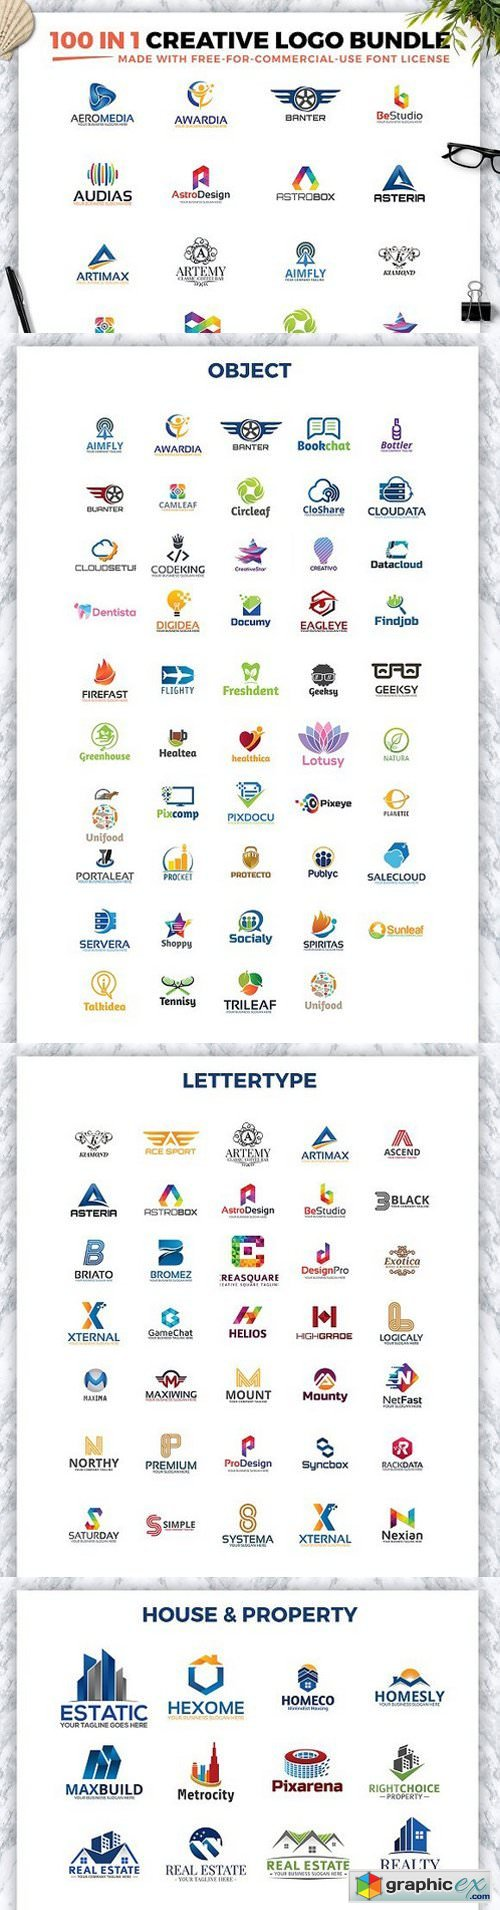 100 IN 1 CREATIVE LOGO BUNDLE